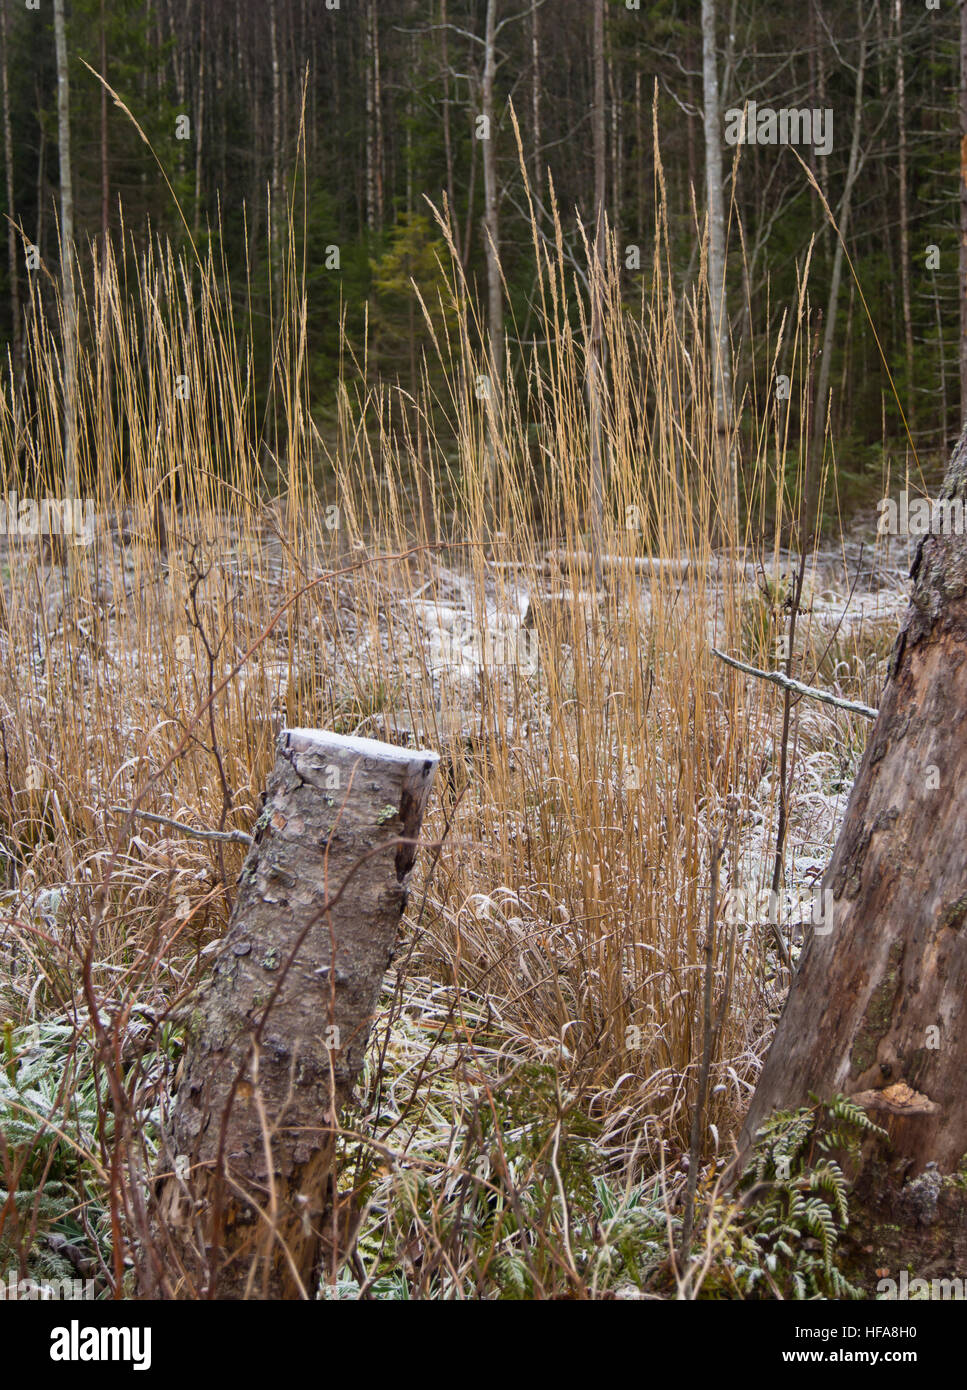 Natural vertical lines, dry grass straws, sawed off birch trunk, frosted field, dark tree trunks, Oslo Norway Stock Photo